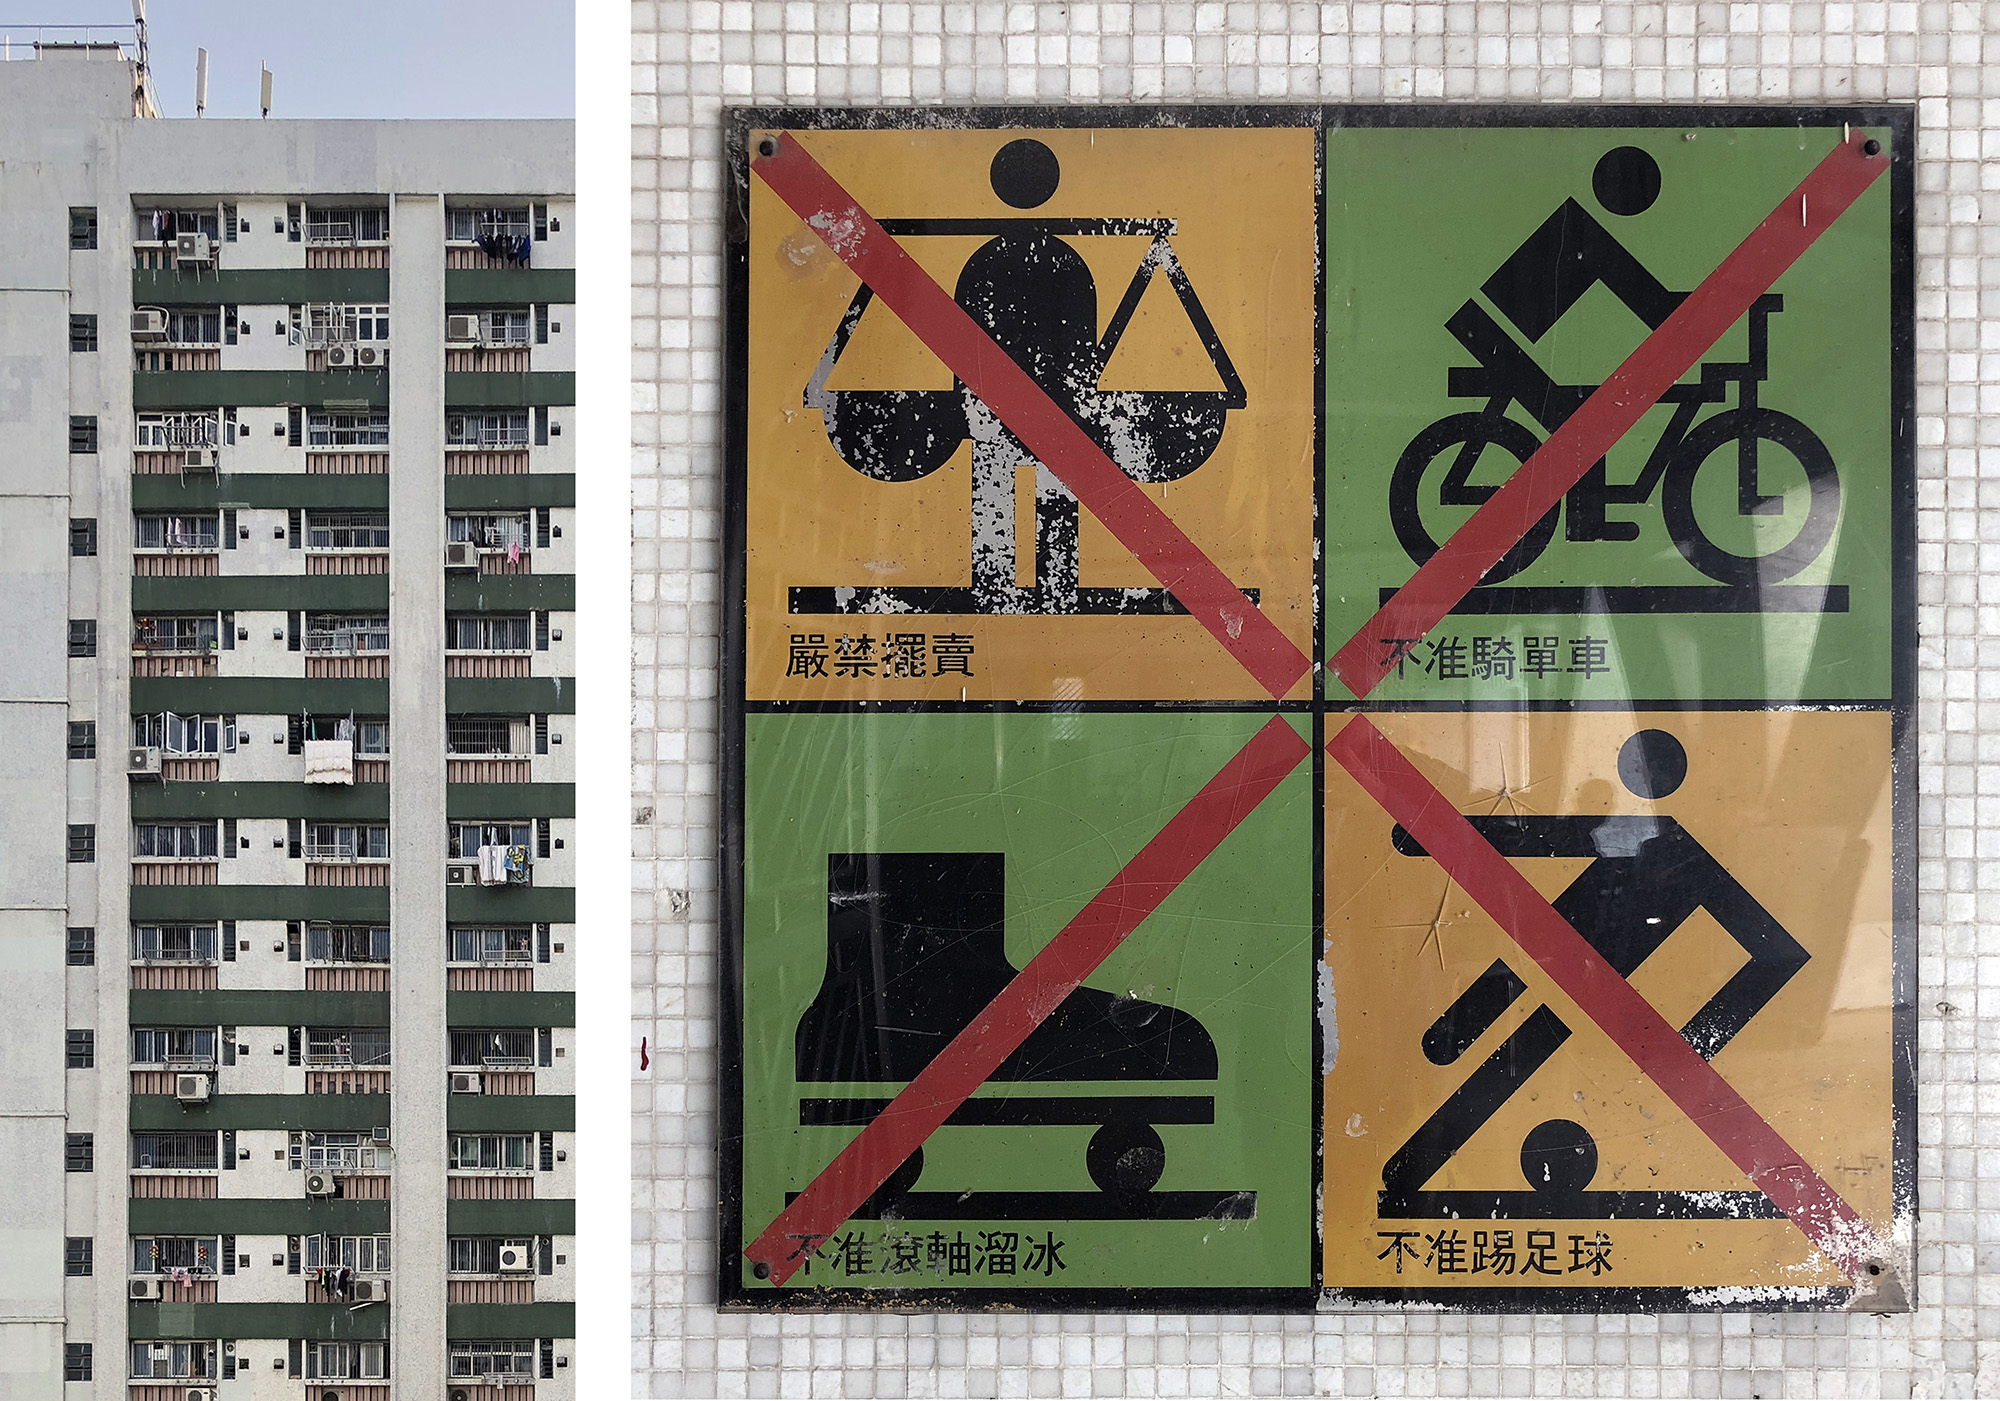 Untouched signage within the Lok Fu Public Housing Estate built in 1980s. The style of the signage matches with the architectural language of the building towers.